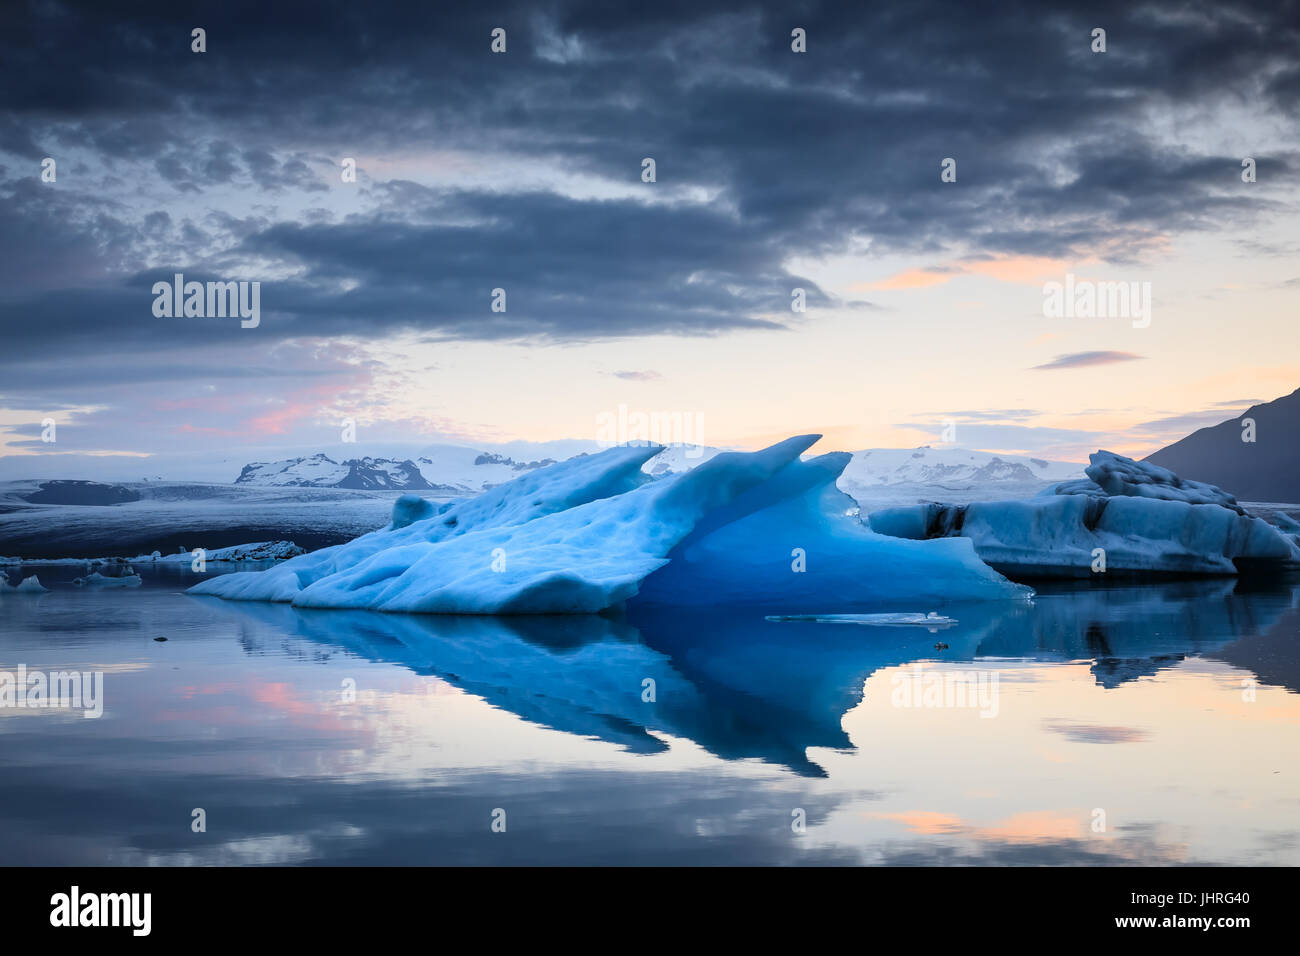 Ice Lagoon in Iceland - Stock Image